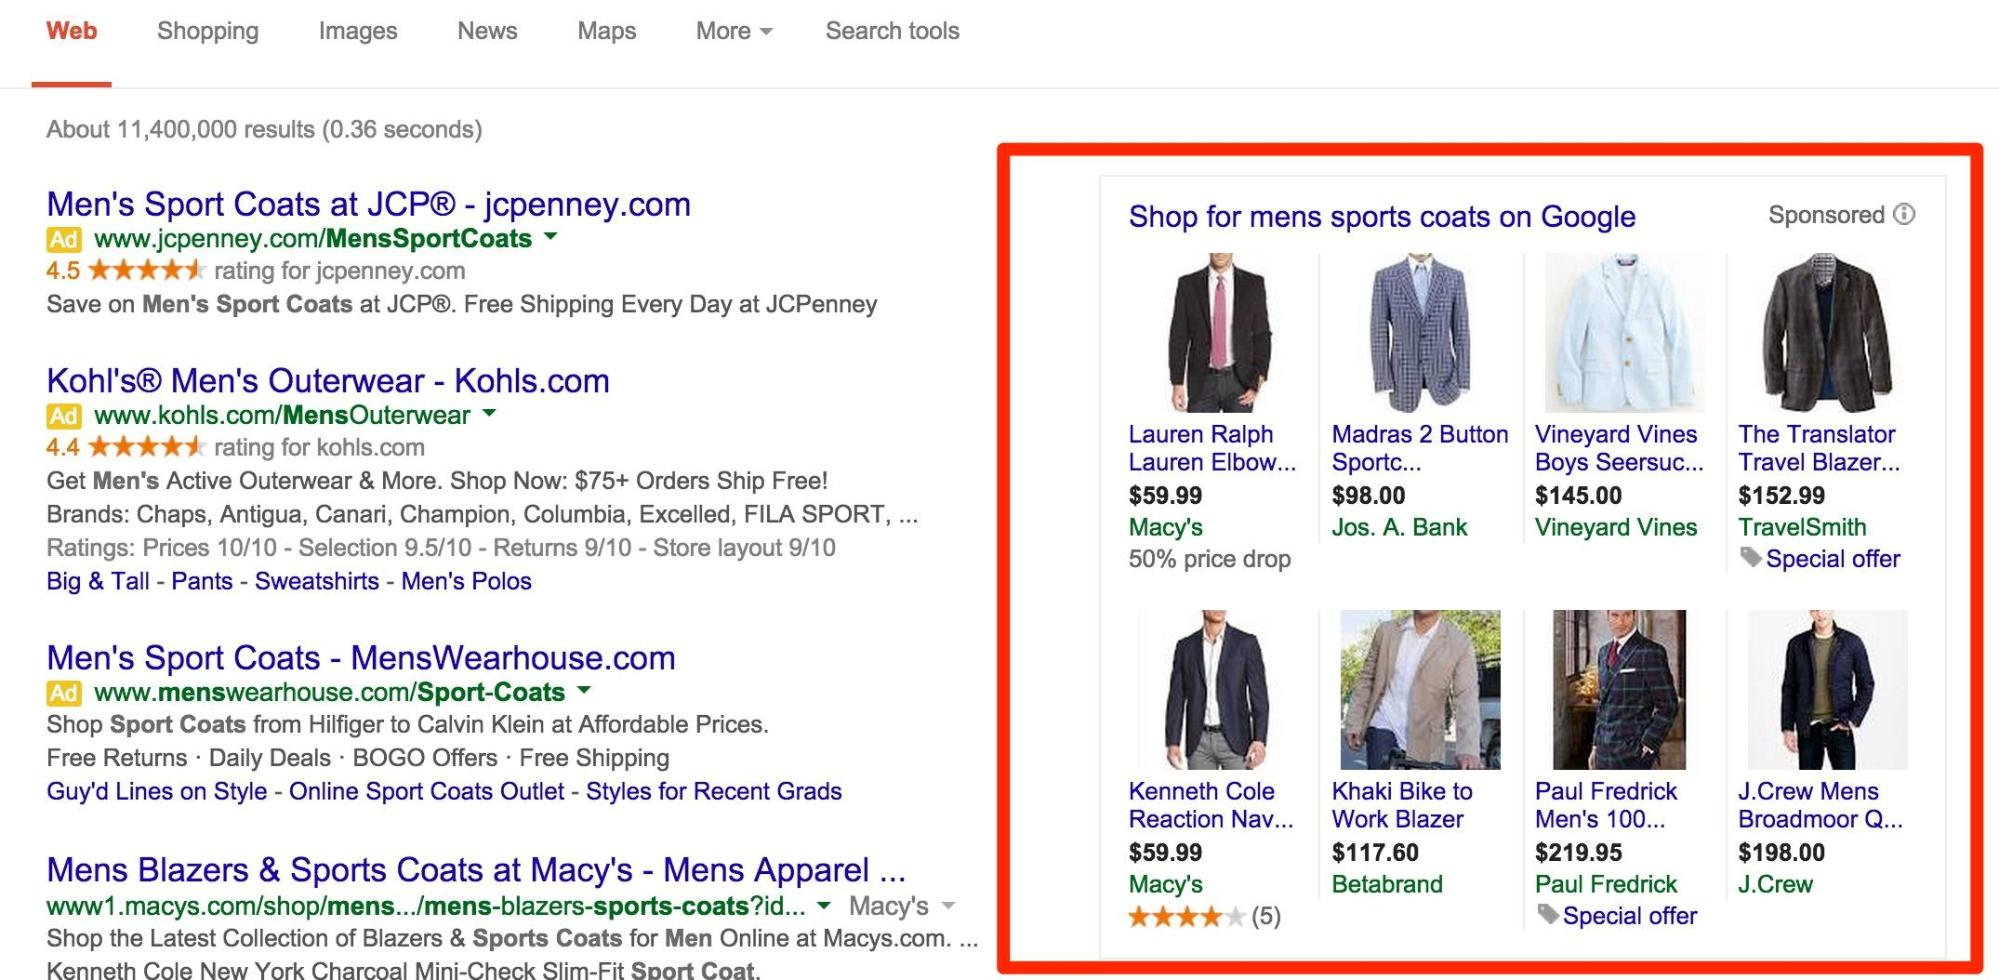 What is Google Shopping - Google Offers in the Shopping Center - image screenshot